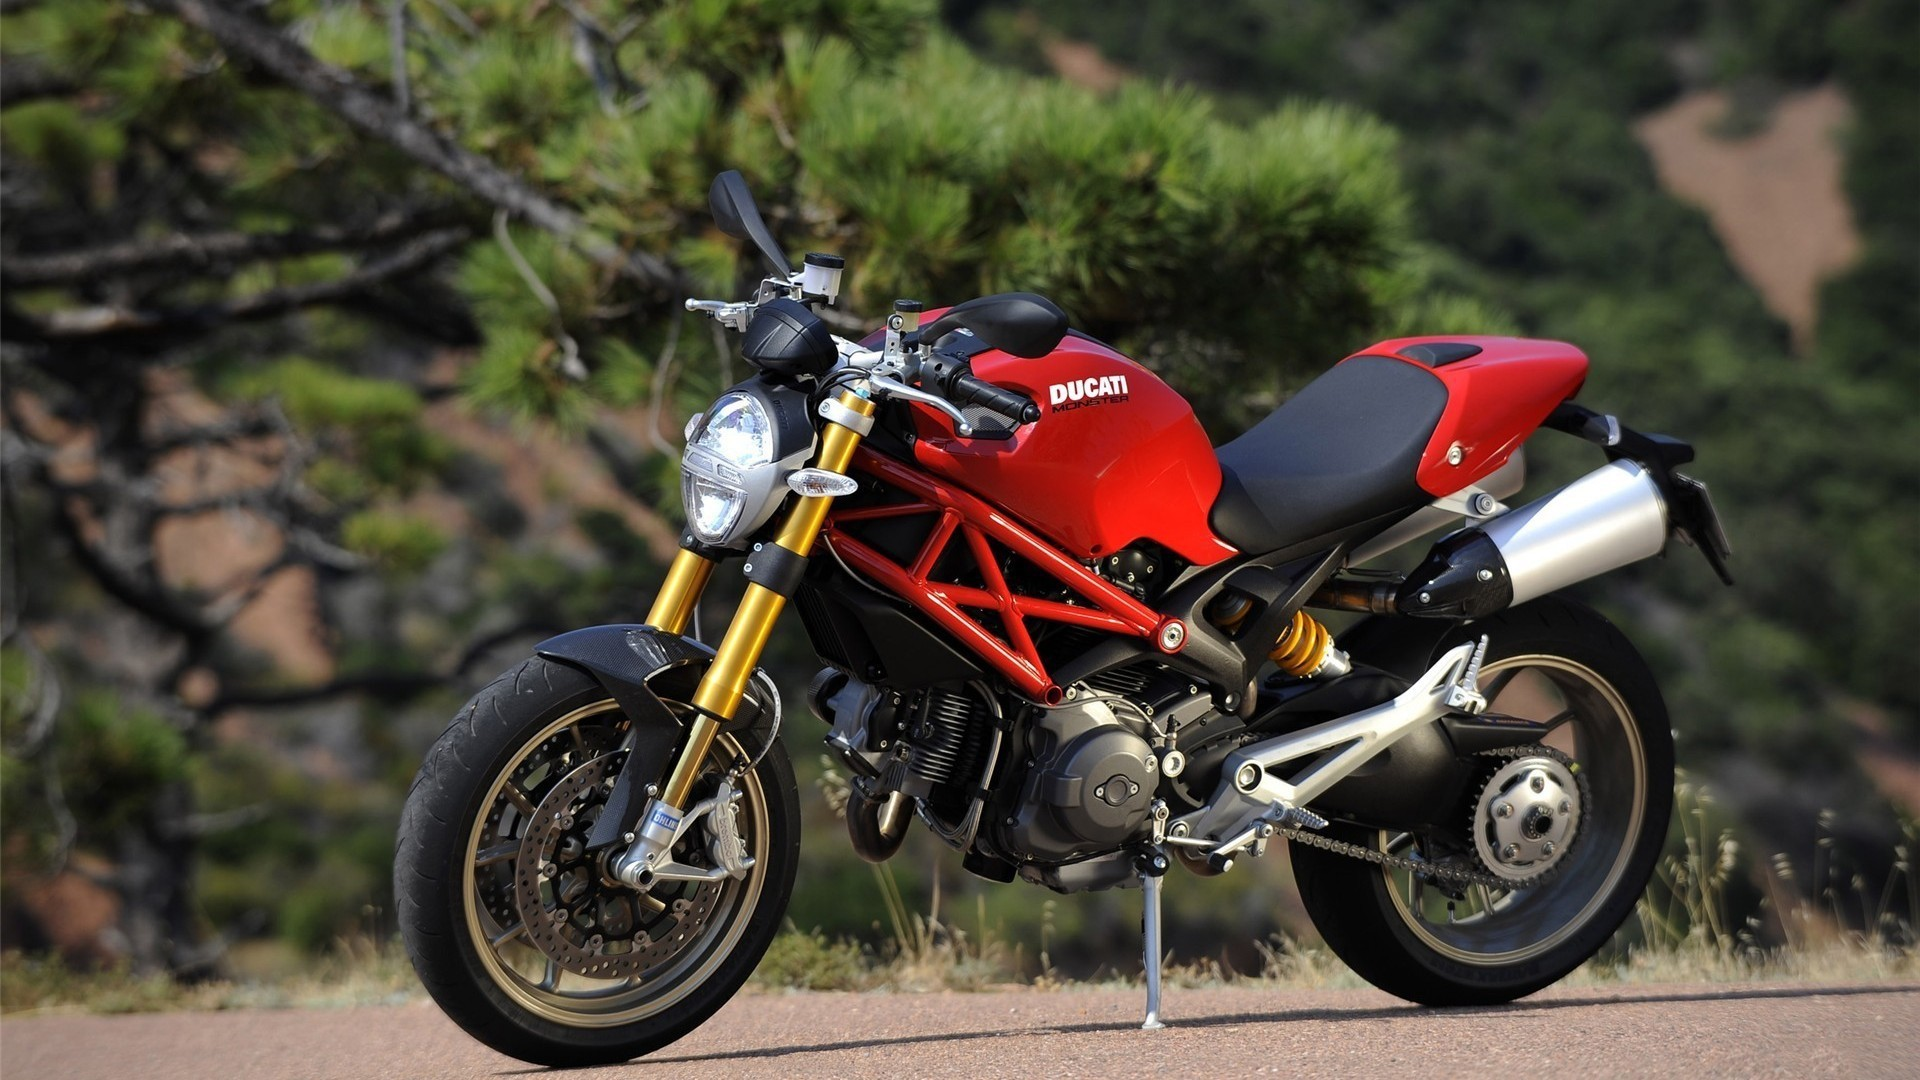 Ducati vehicles motorbikes ducati HD Wallpaper